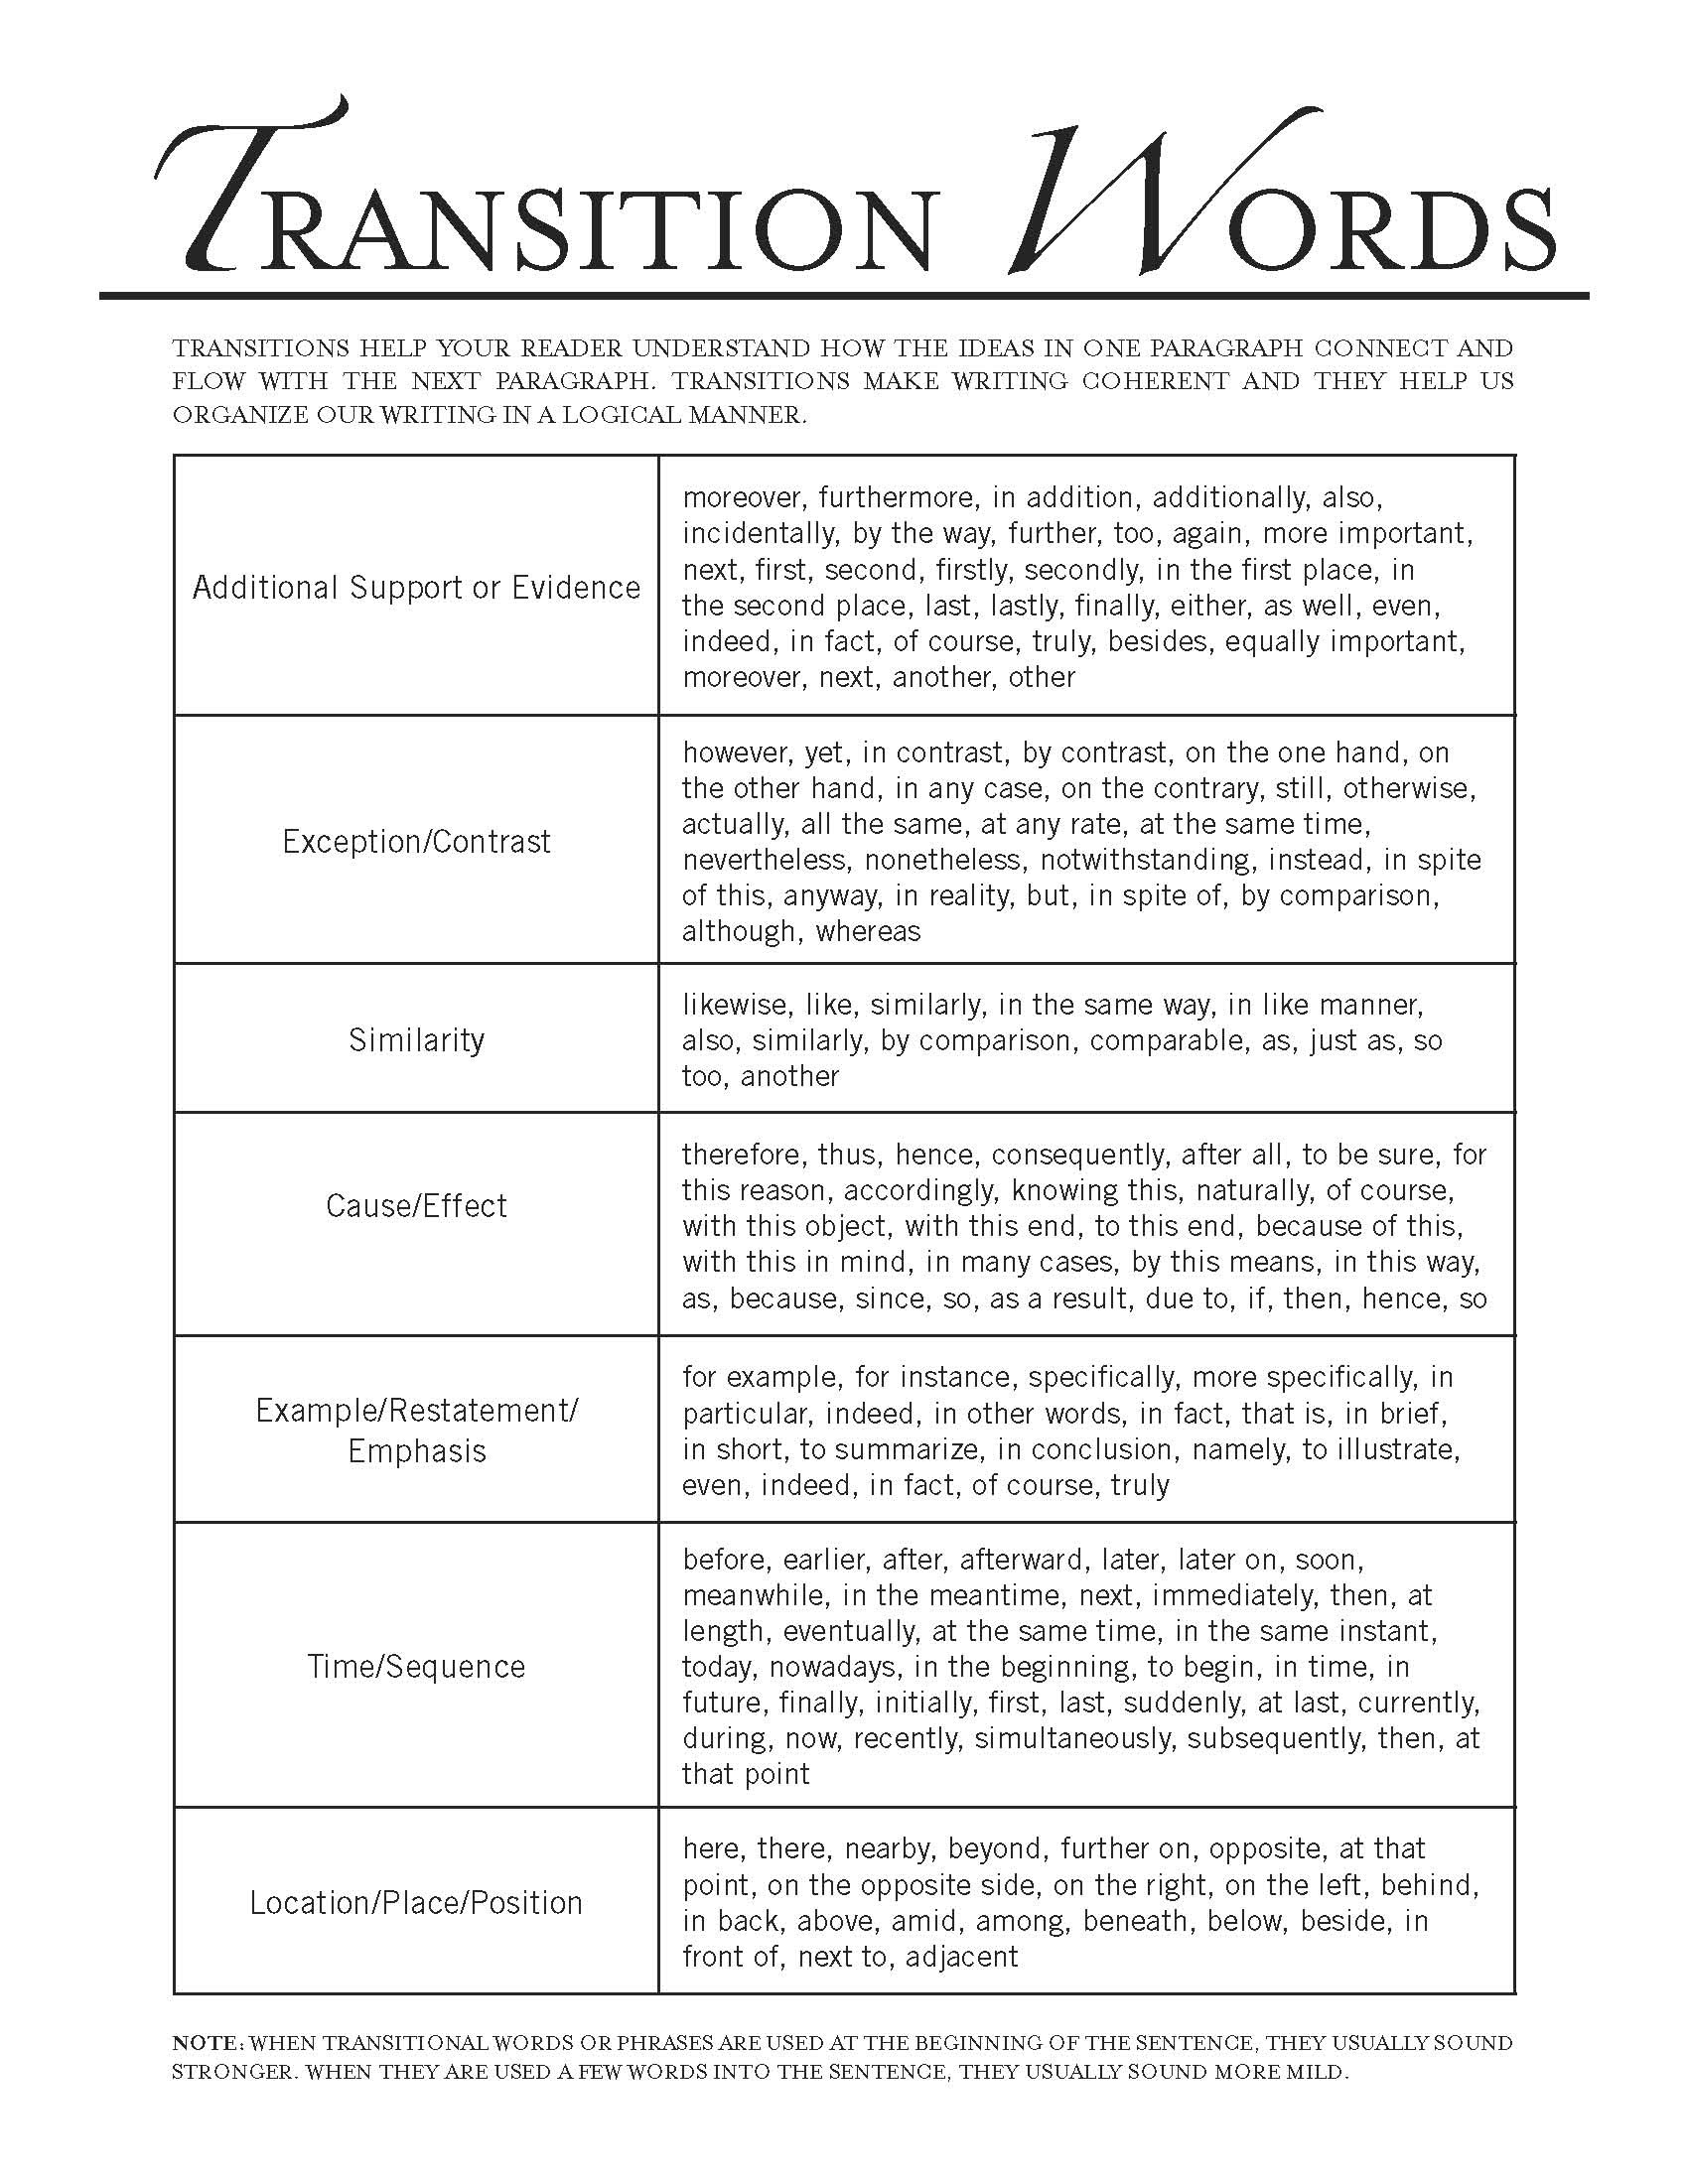 002 Essay Example Argumentative Transitions Transitionsl1 Page 1 Stupendous Transition Phrases Full